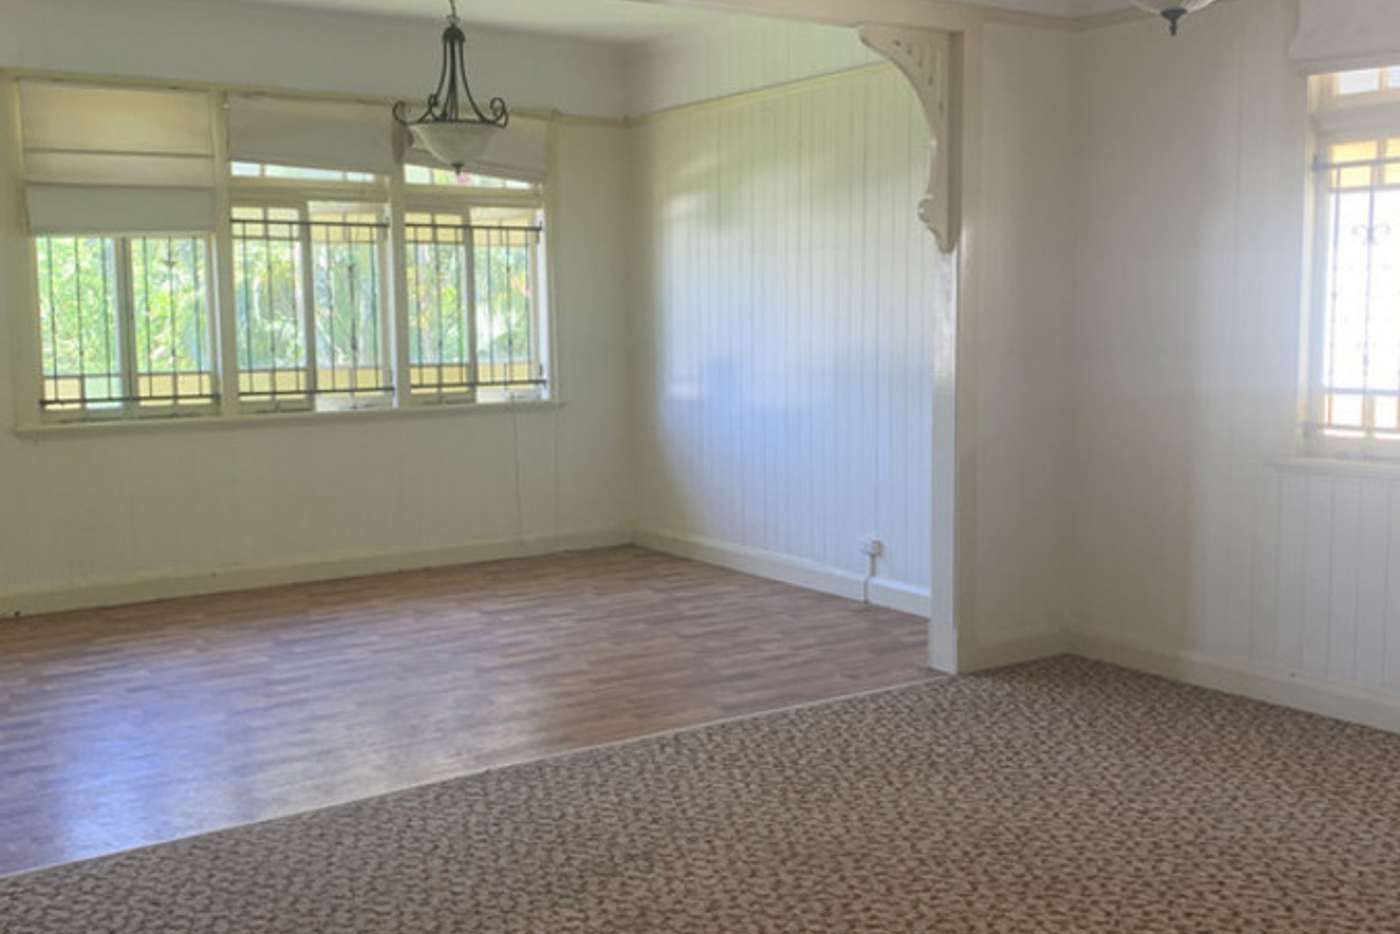 Sixth view of Homely house listing, 34 Bromley Street, Kangaroo Point QLD 4169